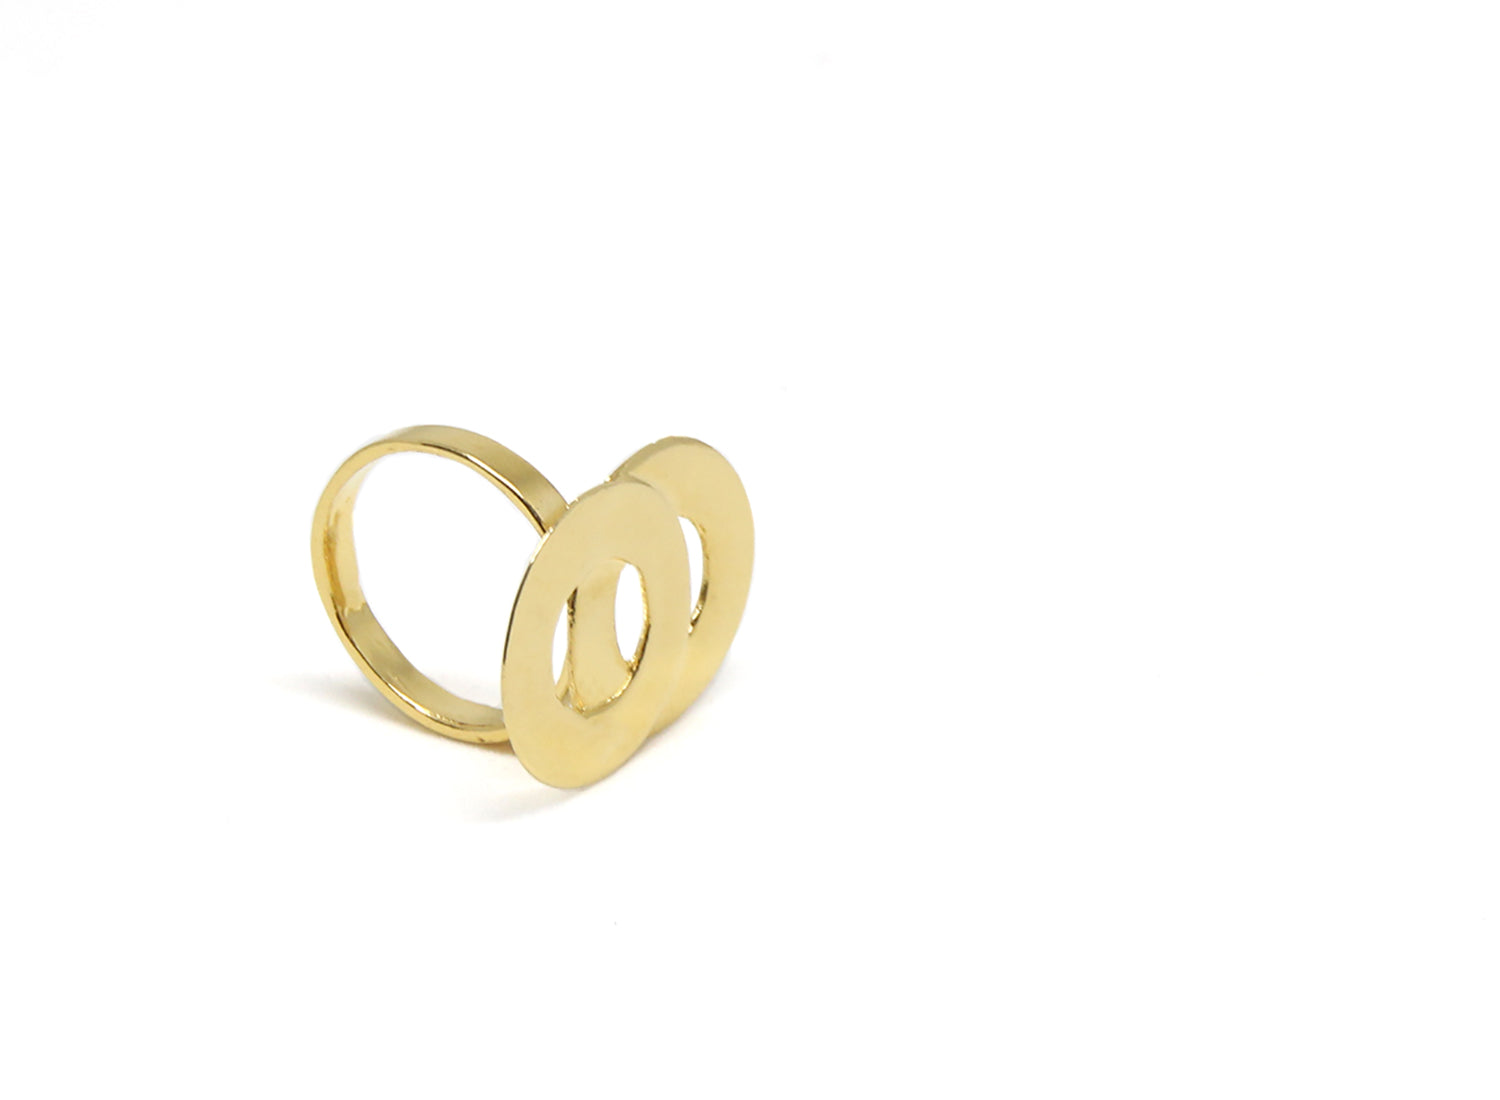 llayers jewelry ring circles loop gold - bague llayers Loop minimale or cercles entrelacés